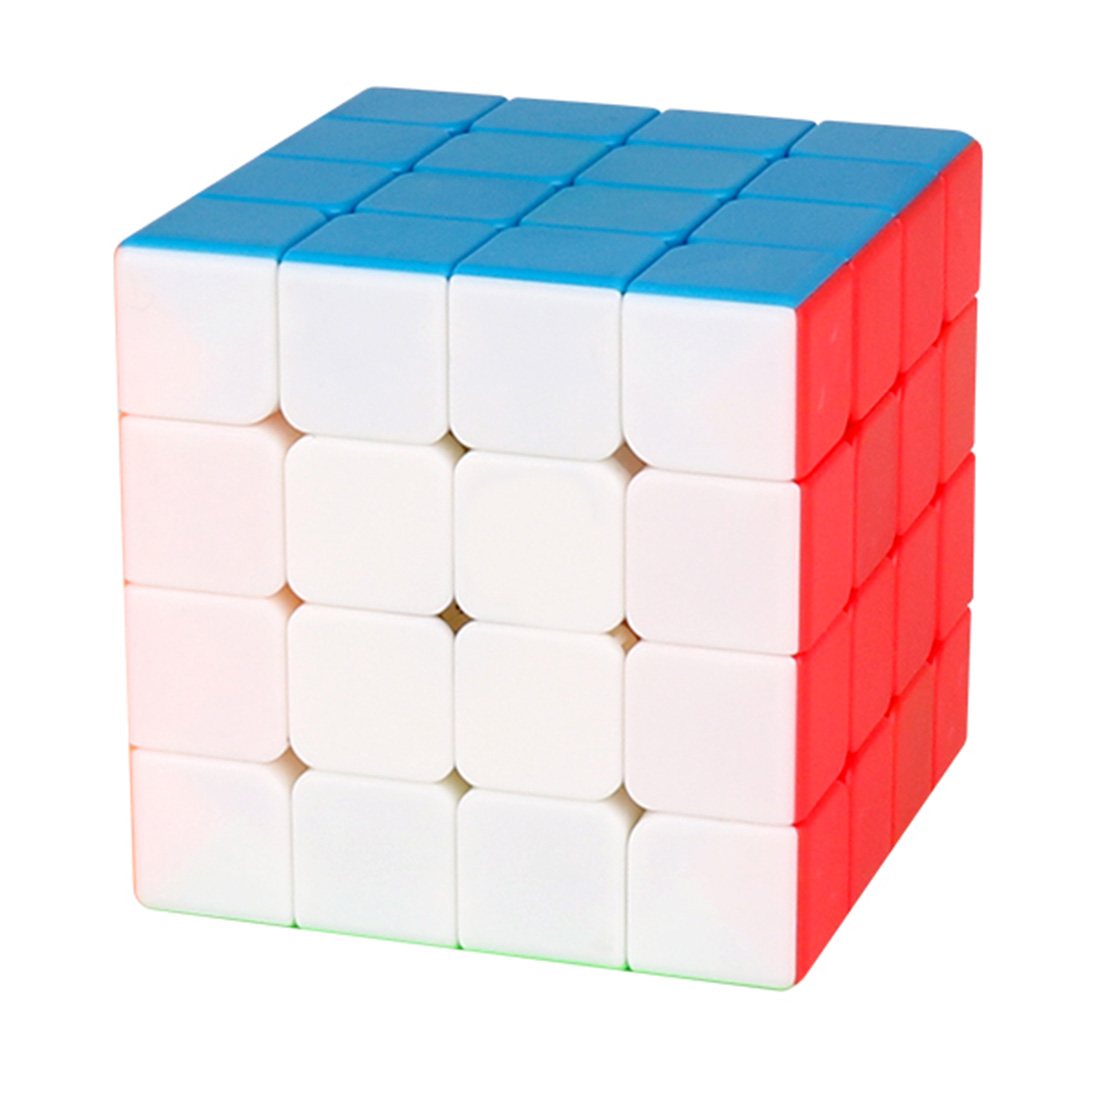 MeiLong4 MF8826 4 X 4 Magic Cube Puzzle Game Puzzle Cubes Kids Early Educational Toy For Children New Cube 2019 - Colorful(China)